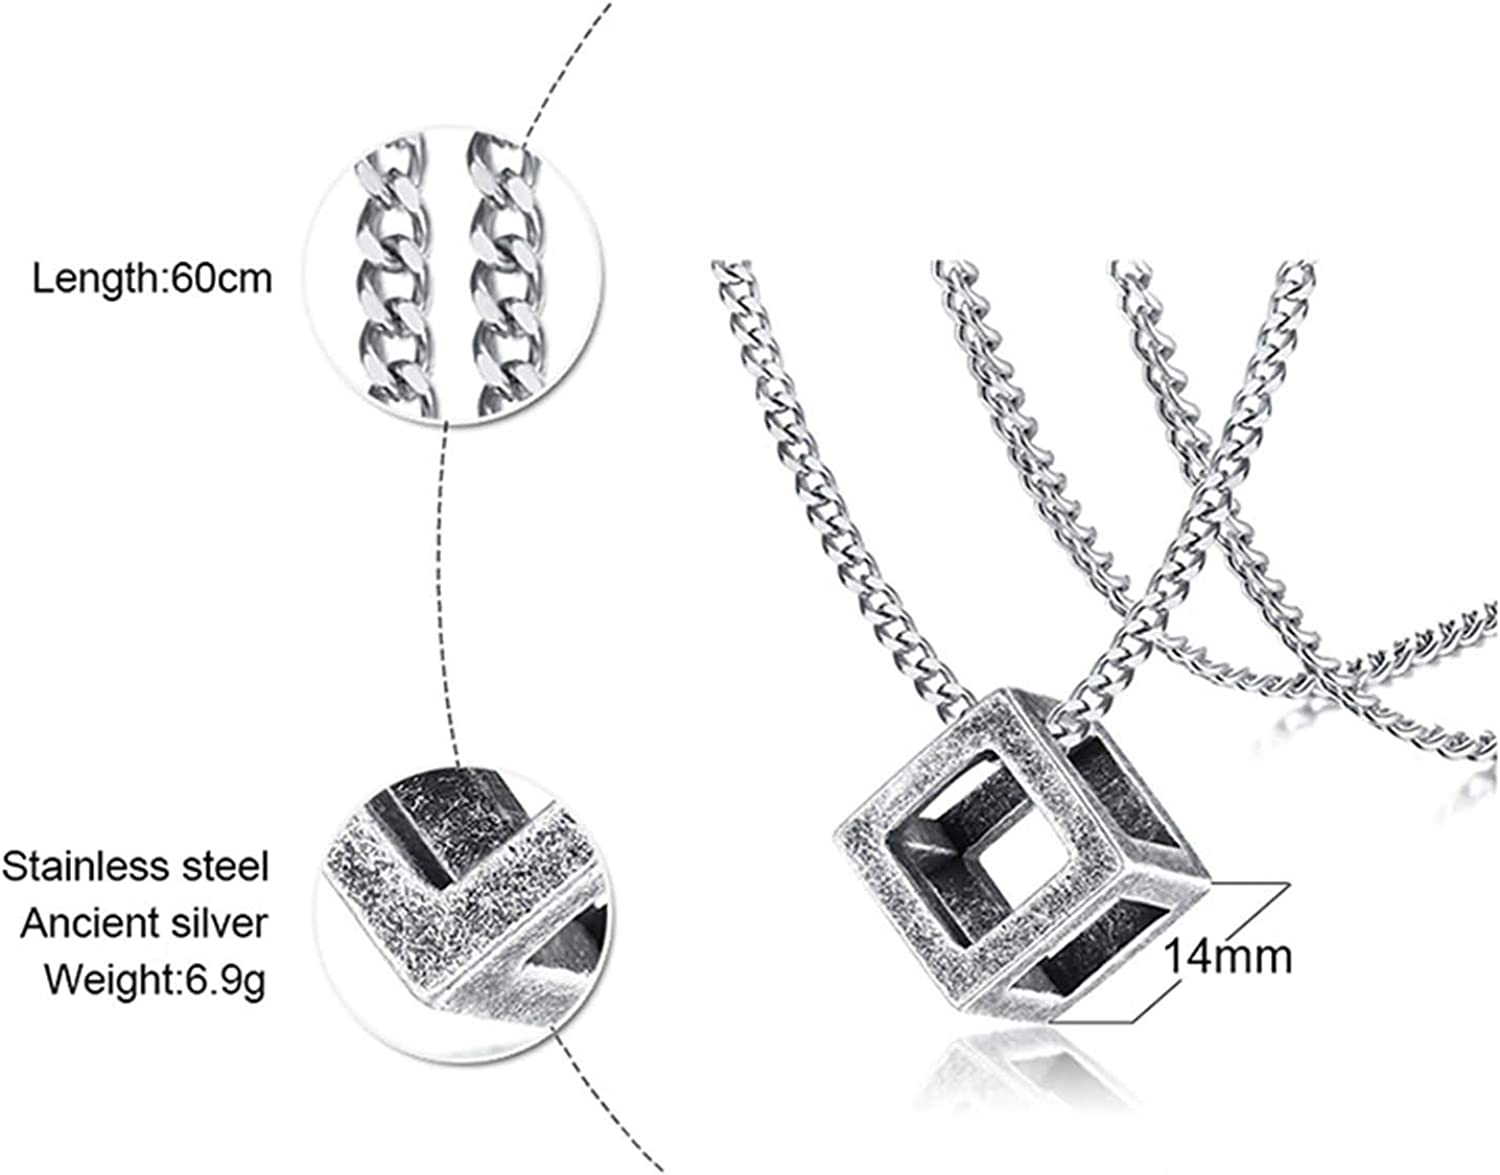 Aokarry Stainless Steel Necklace for Men Hollow Cube Pendant Necklaces